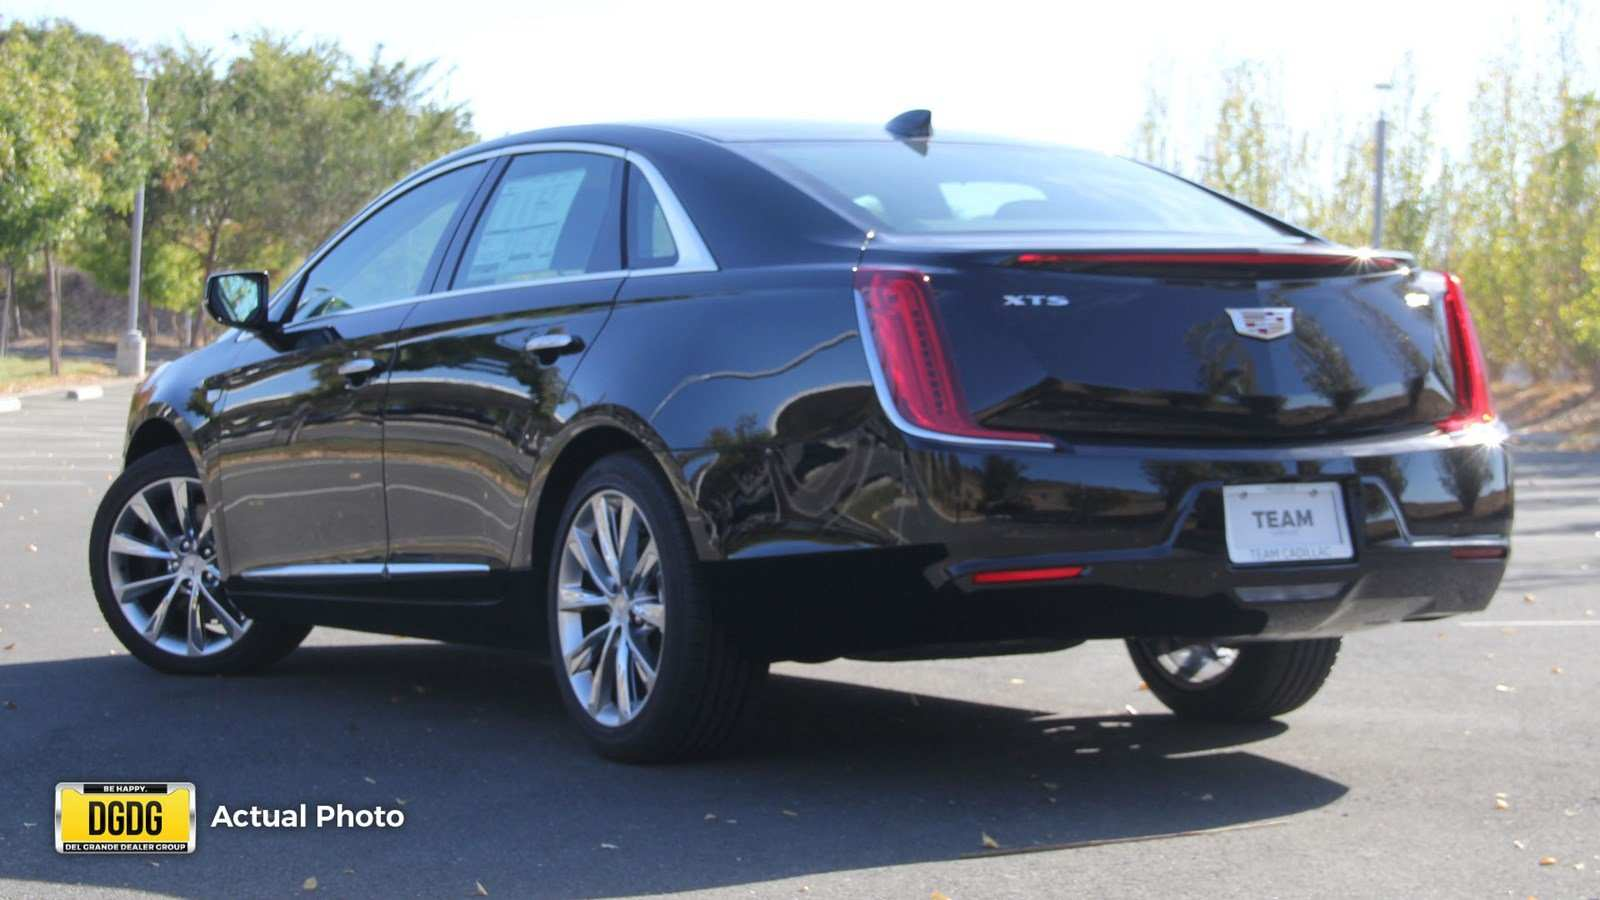 47 All New 2019 Candillac Xts Pricing for 2019 Candillac Xts